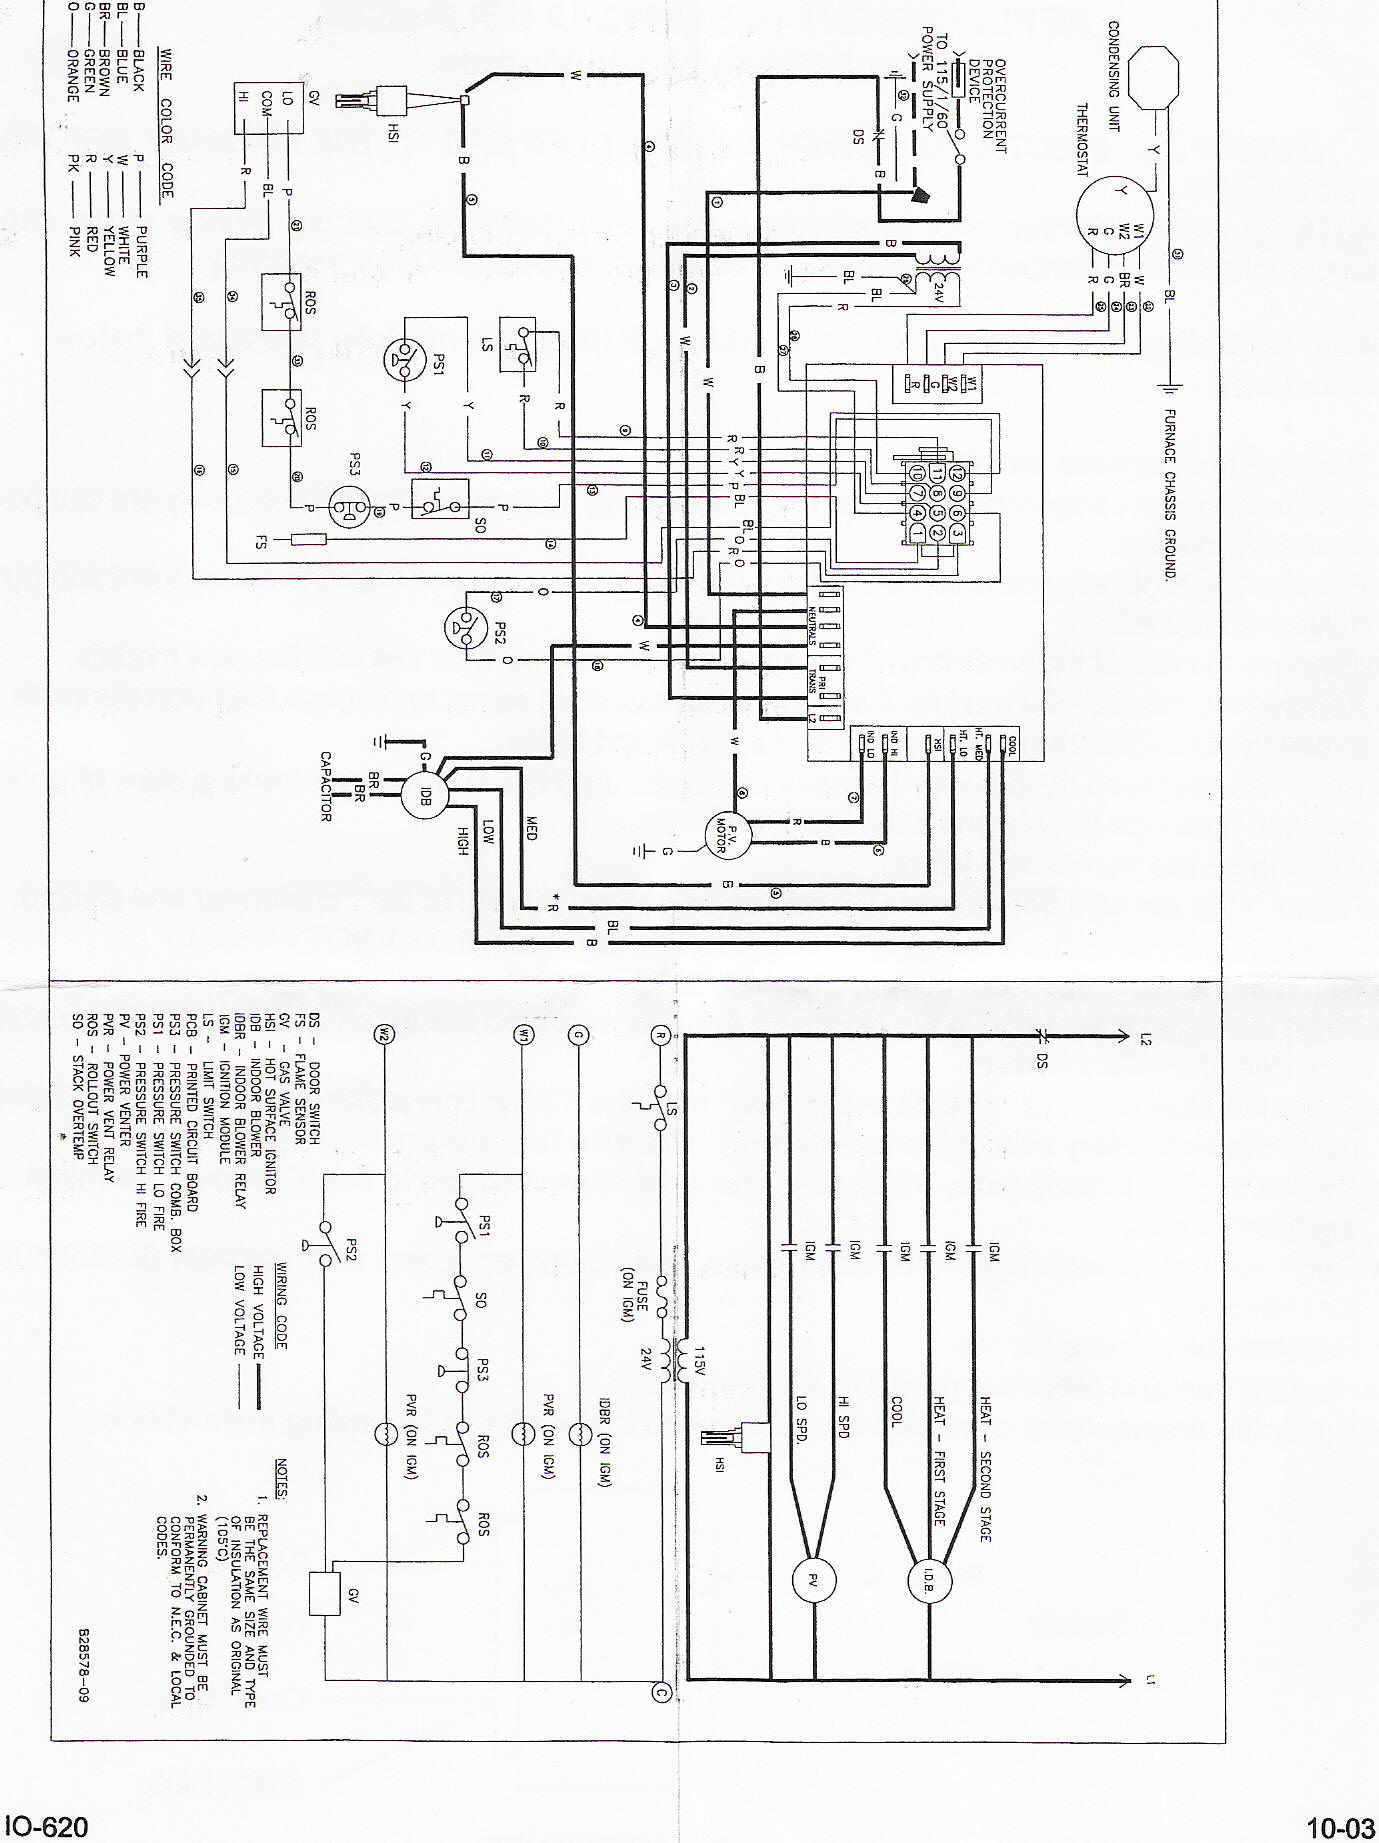 hight resolution of wrg 0526 johnson control board wiring diagramsjohnson control board wiring diagrams